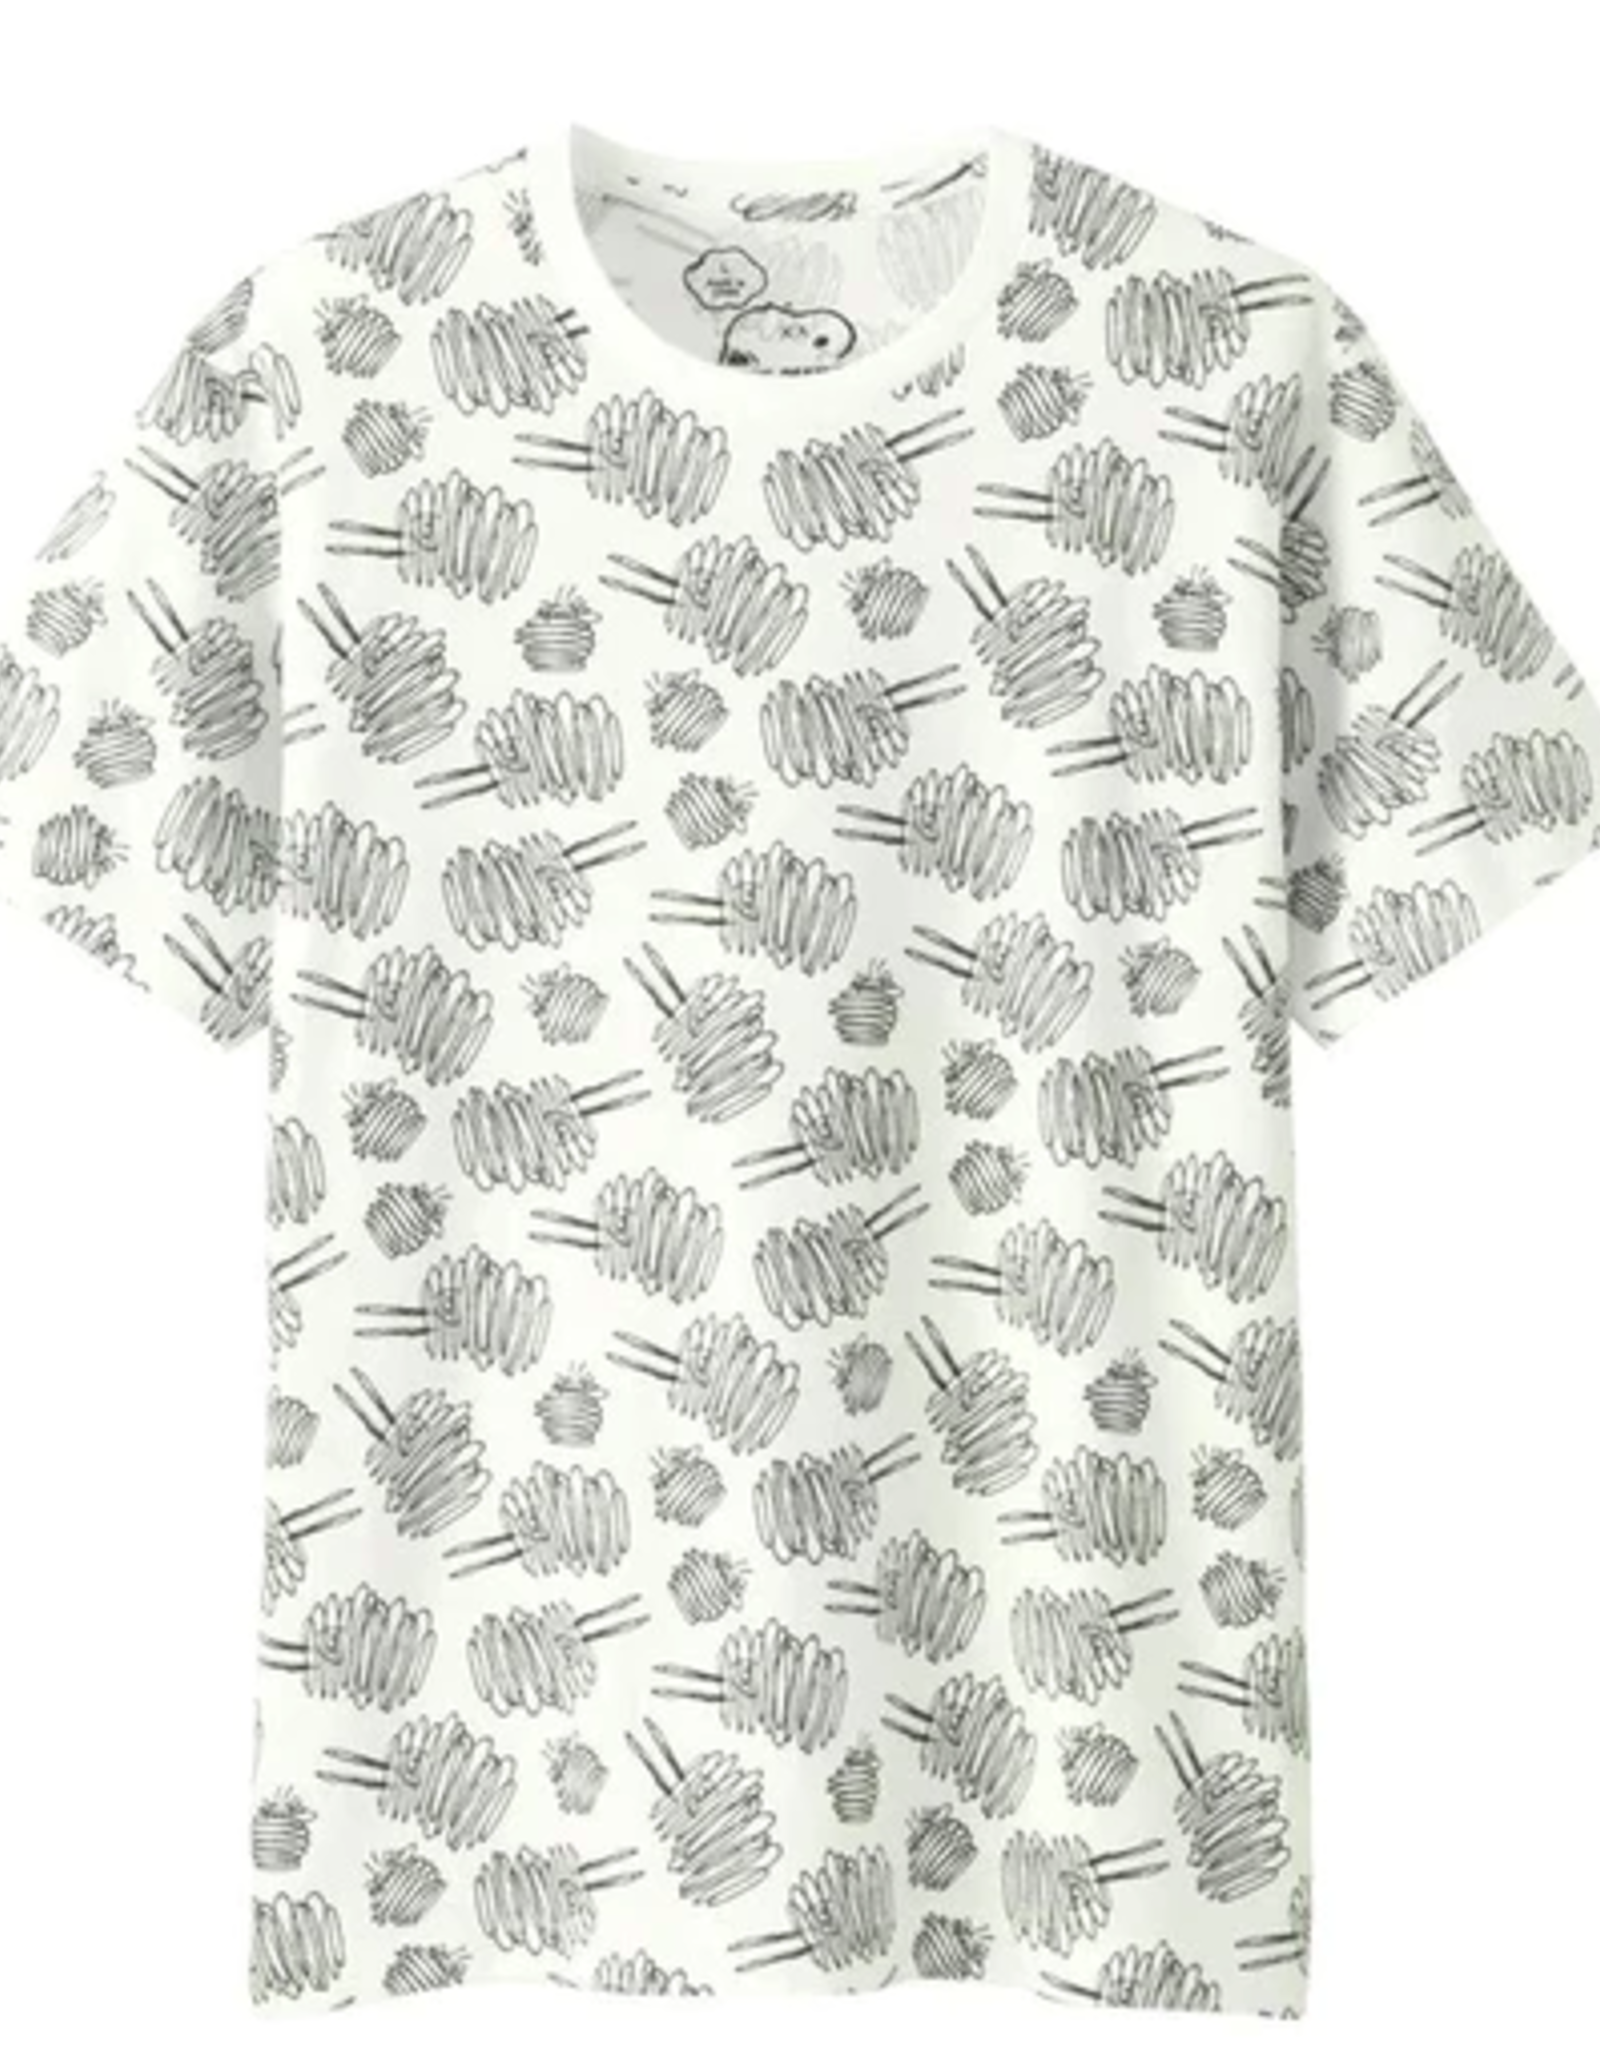 KAWS x Uniqlo x Peanuts Dust Cloud All Over Tee White